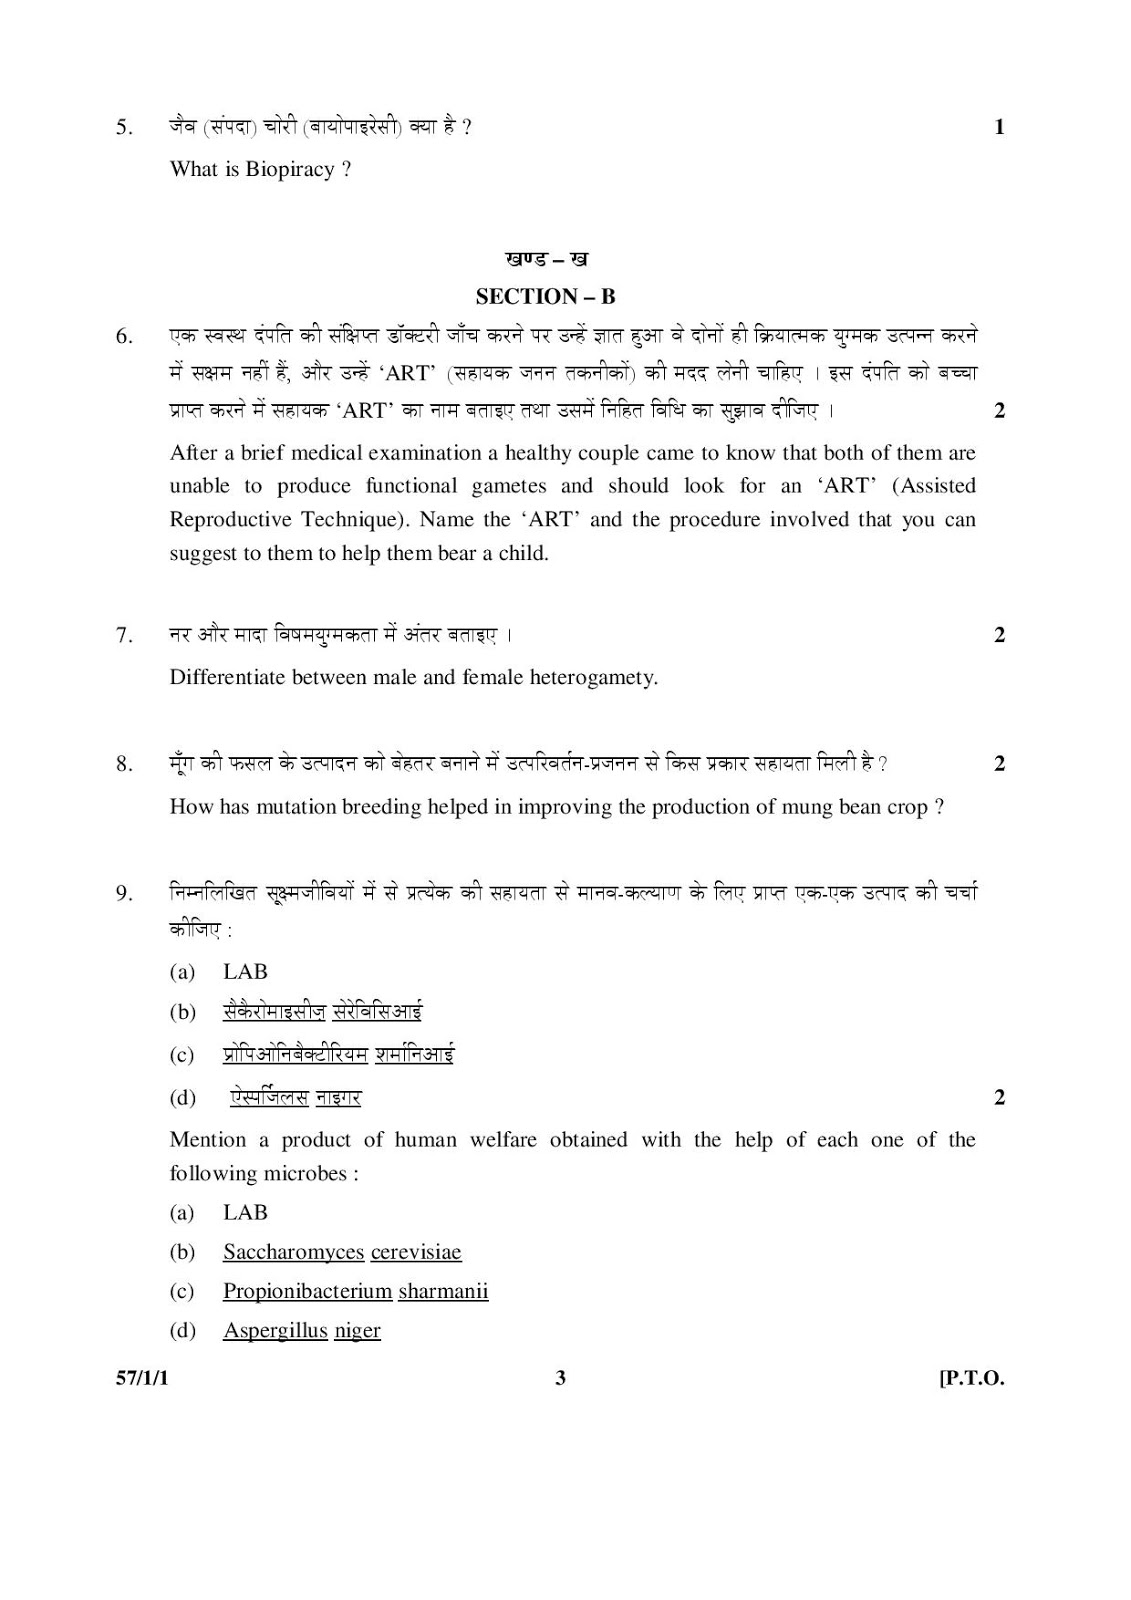 cbse class 12th 2015 Biology question paper